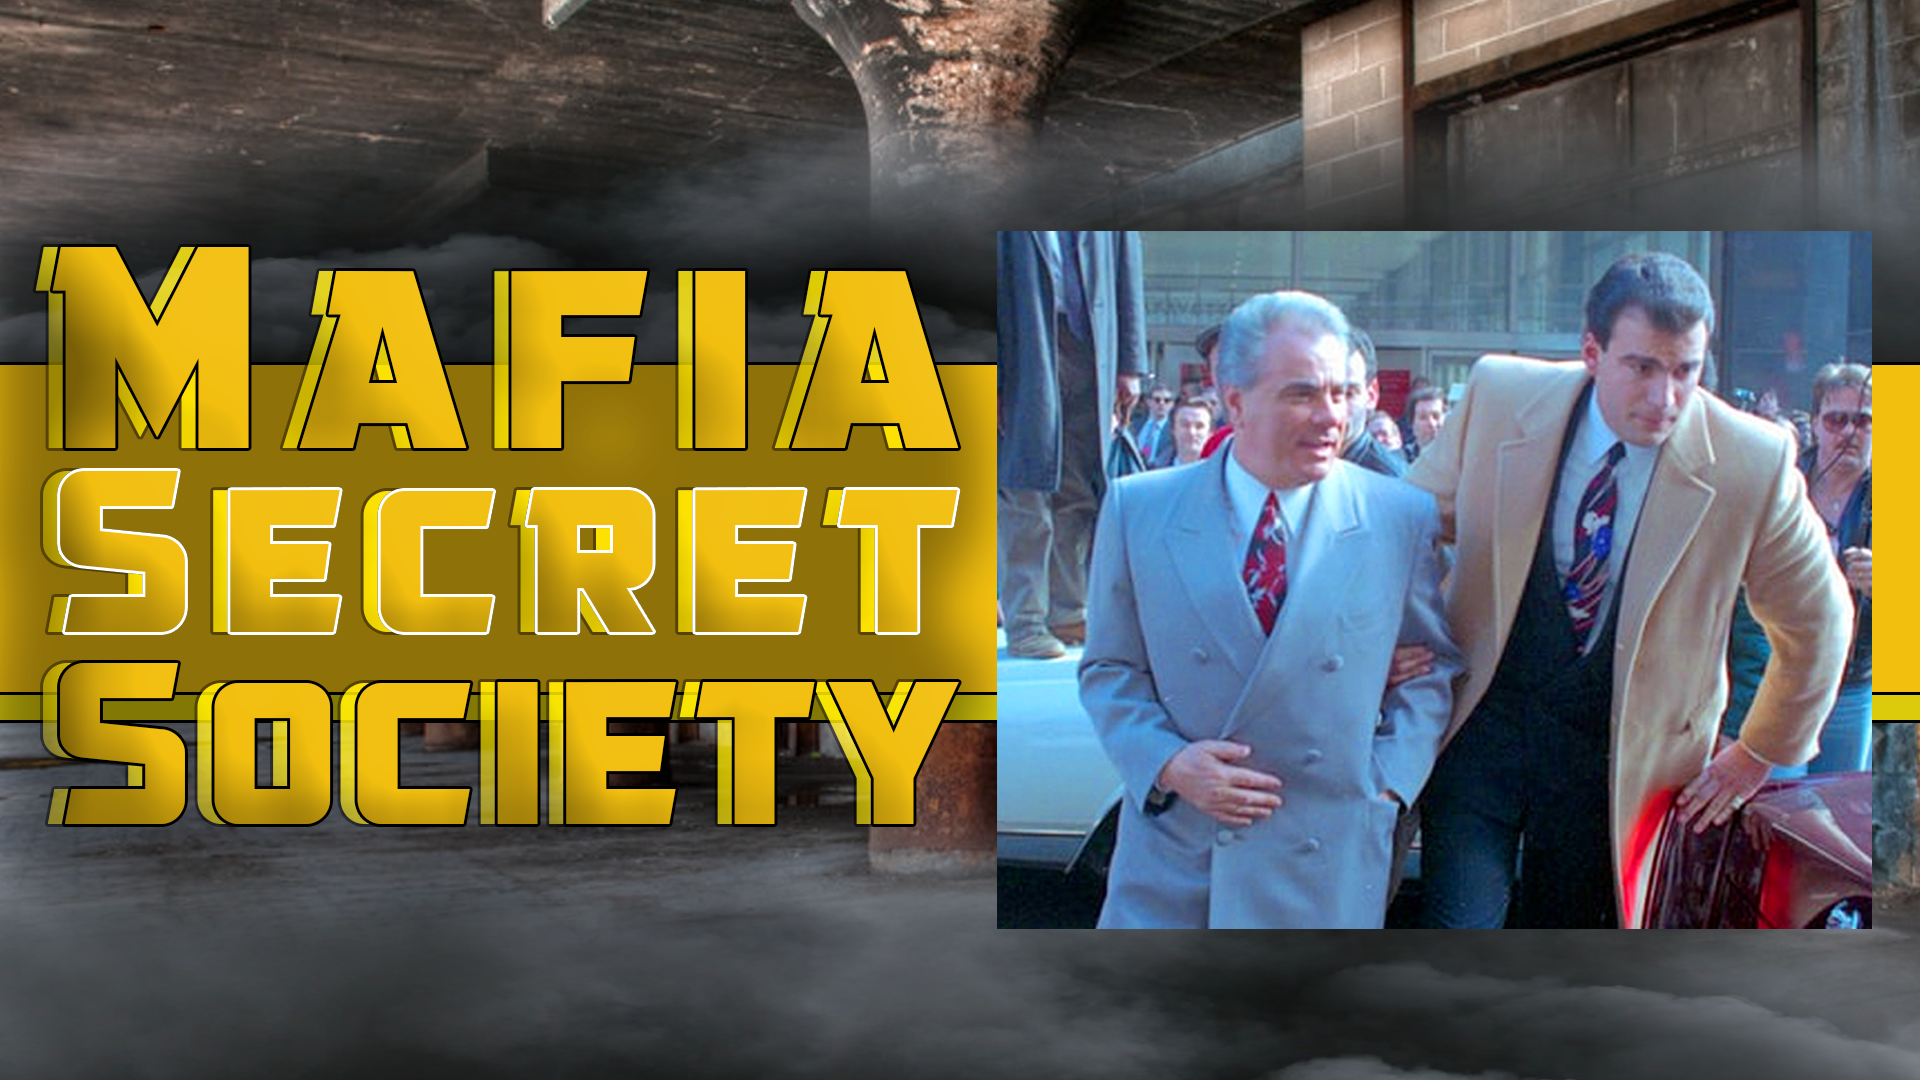 Mafia - Secret Society